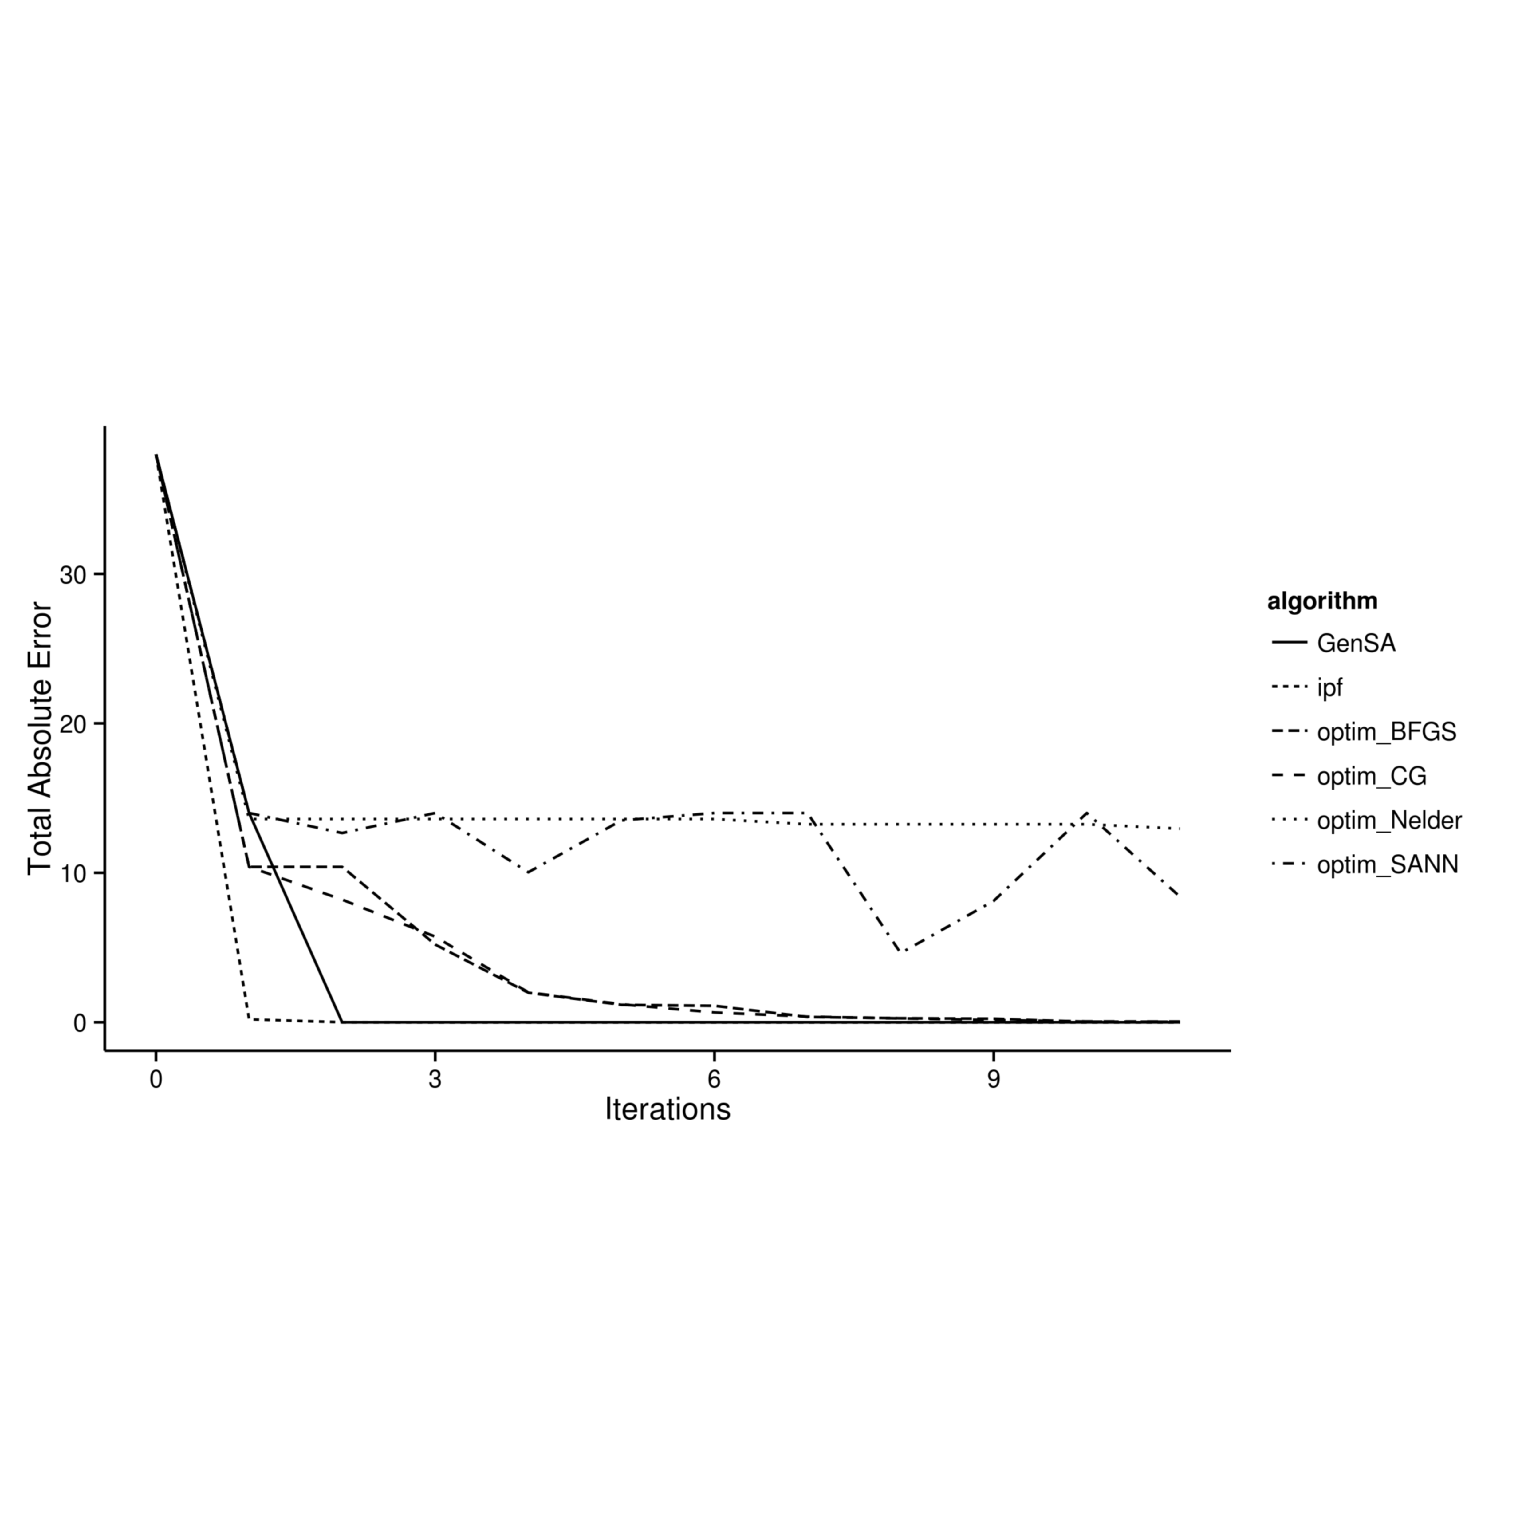 Relationship between number of iterations and goodness-of-fit between observed and simulated results for different optimisation algorithms.